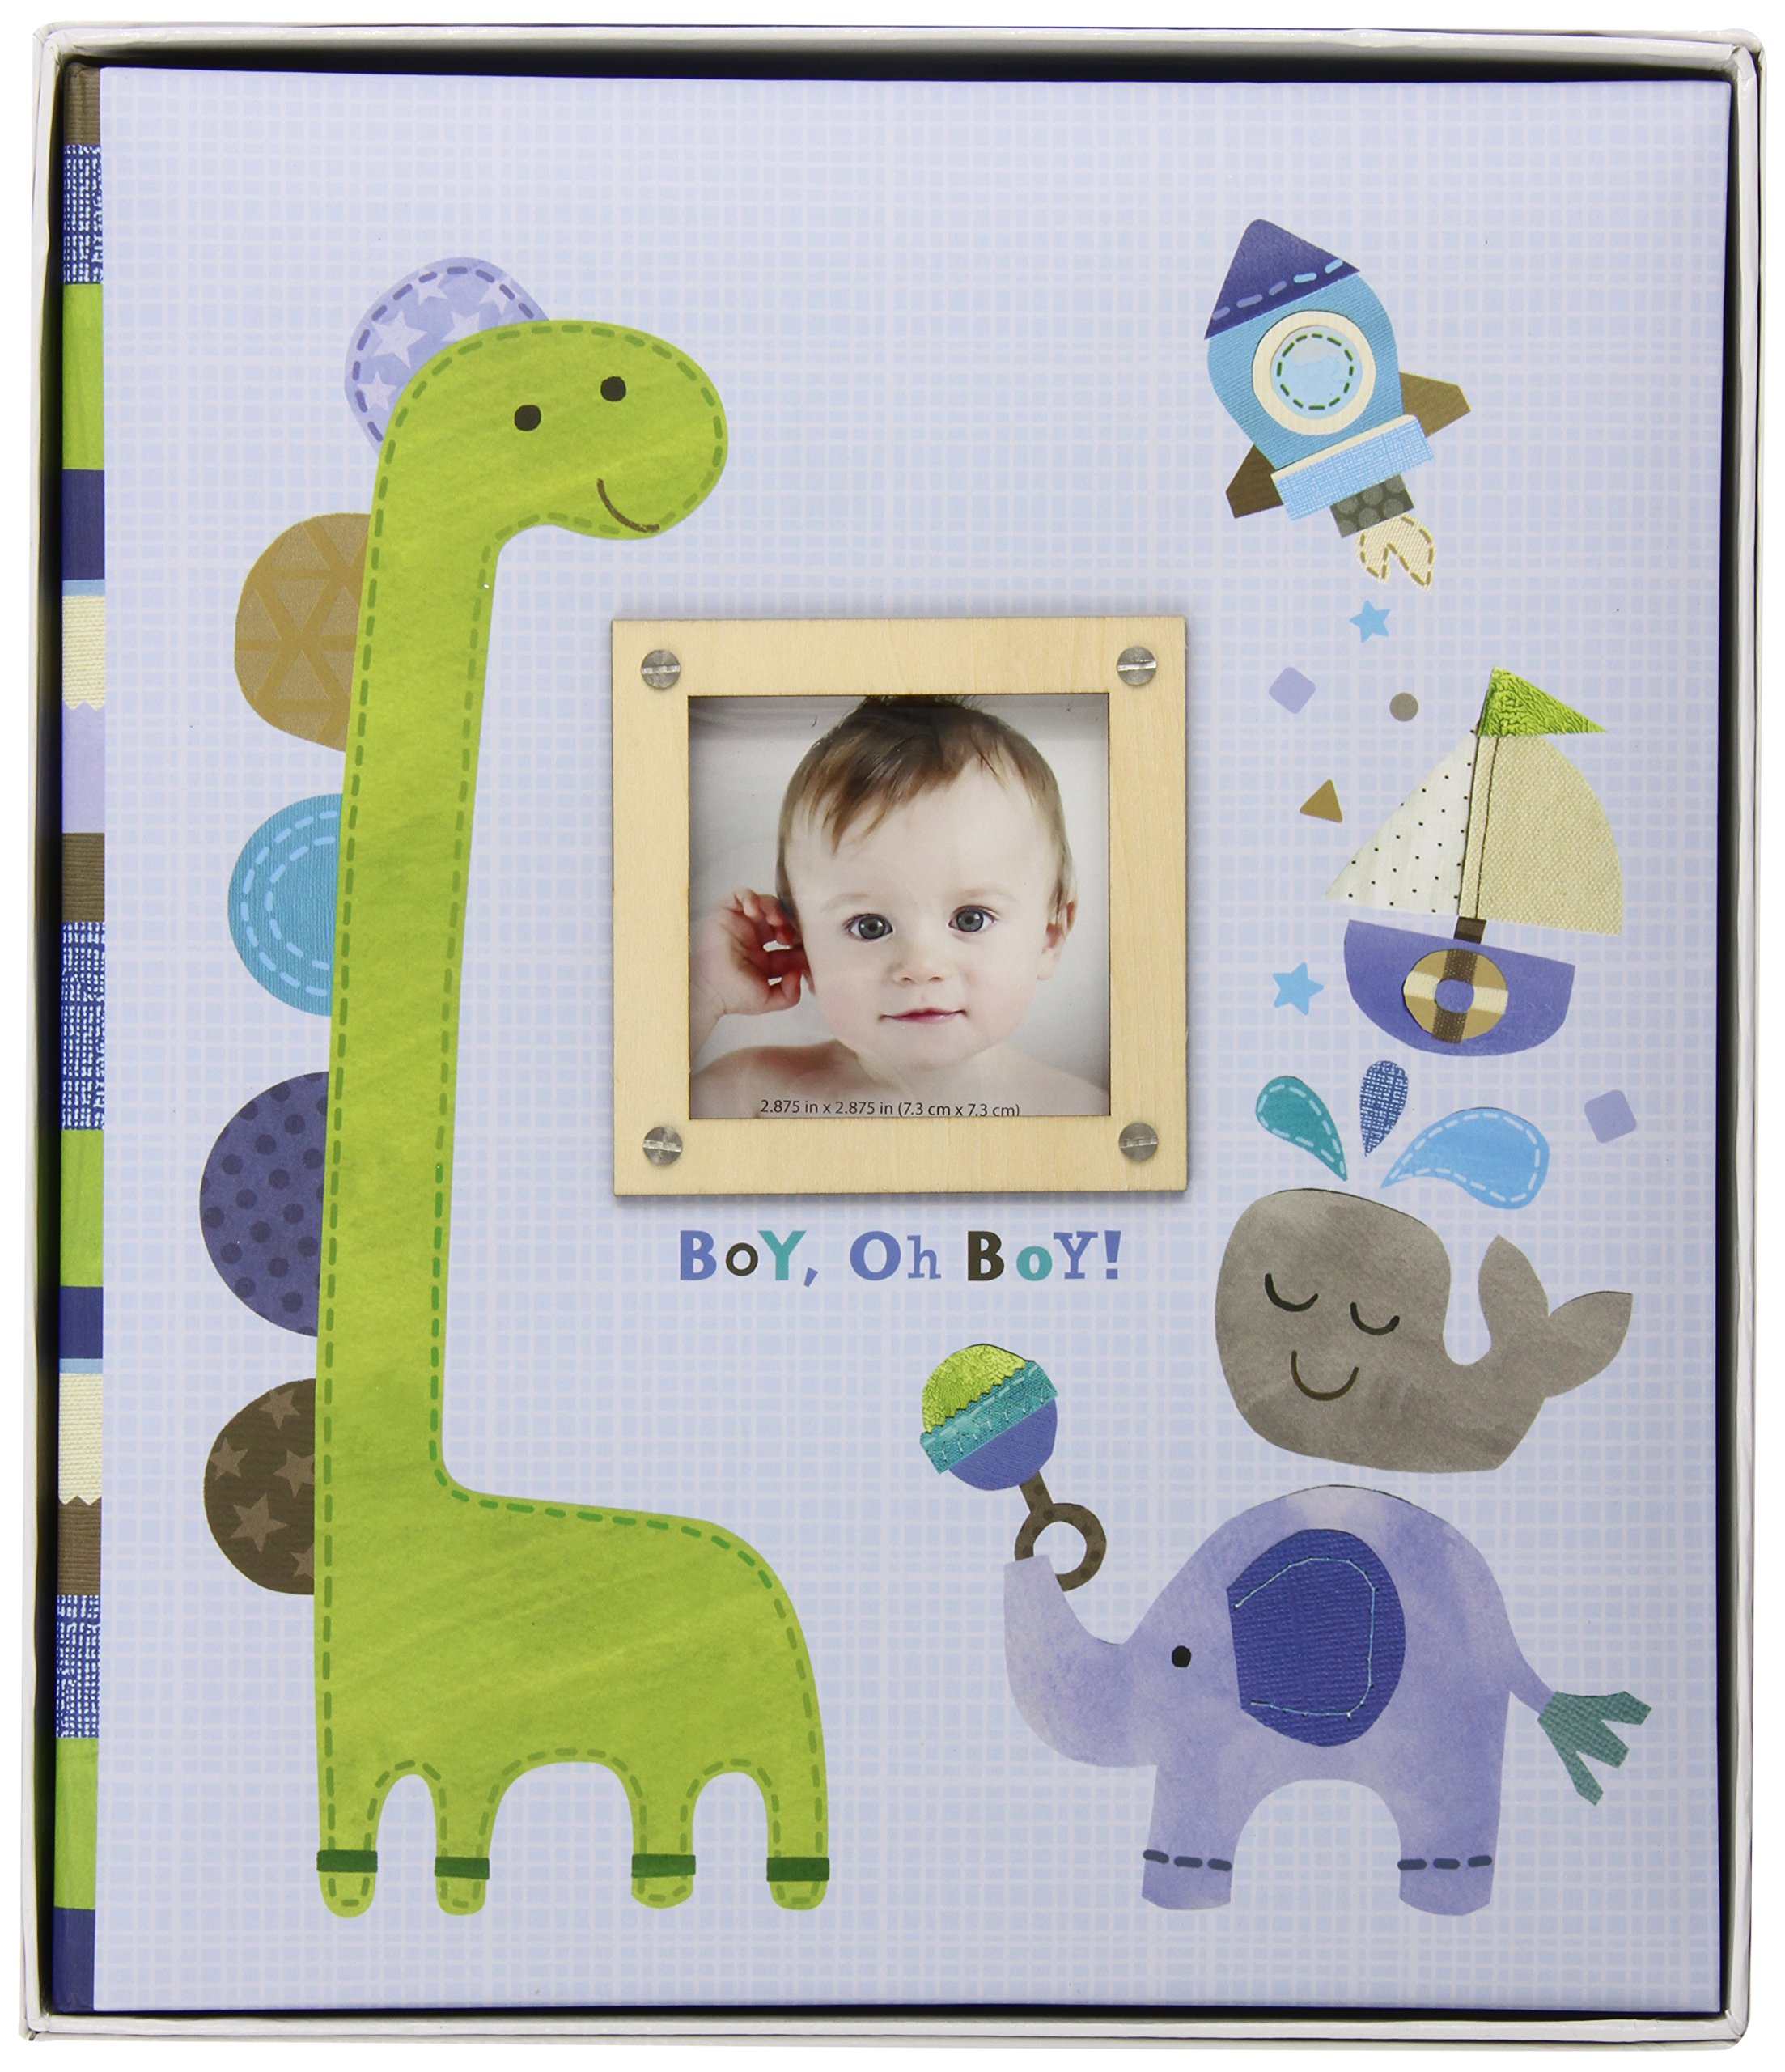 C.R. Gibson First 5 Years Loose Leaf Memory Book, Record Memories and Milestones on 64 Beautifully Illustrated Pages - Boy Oh Boy by C.R. Gibson